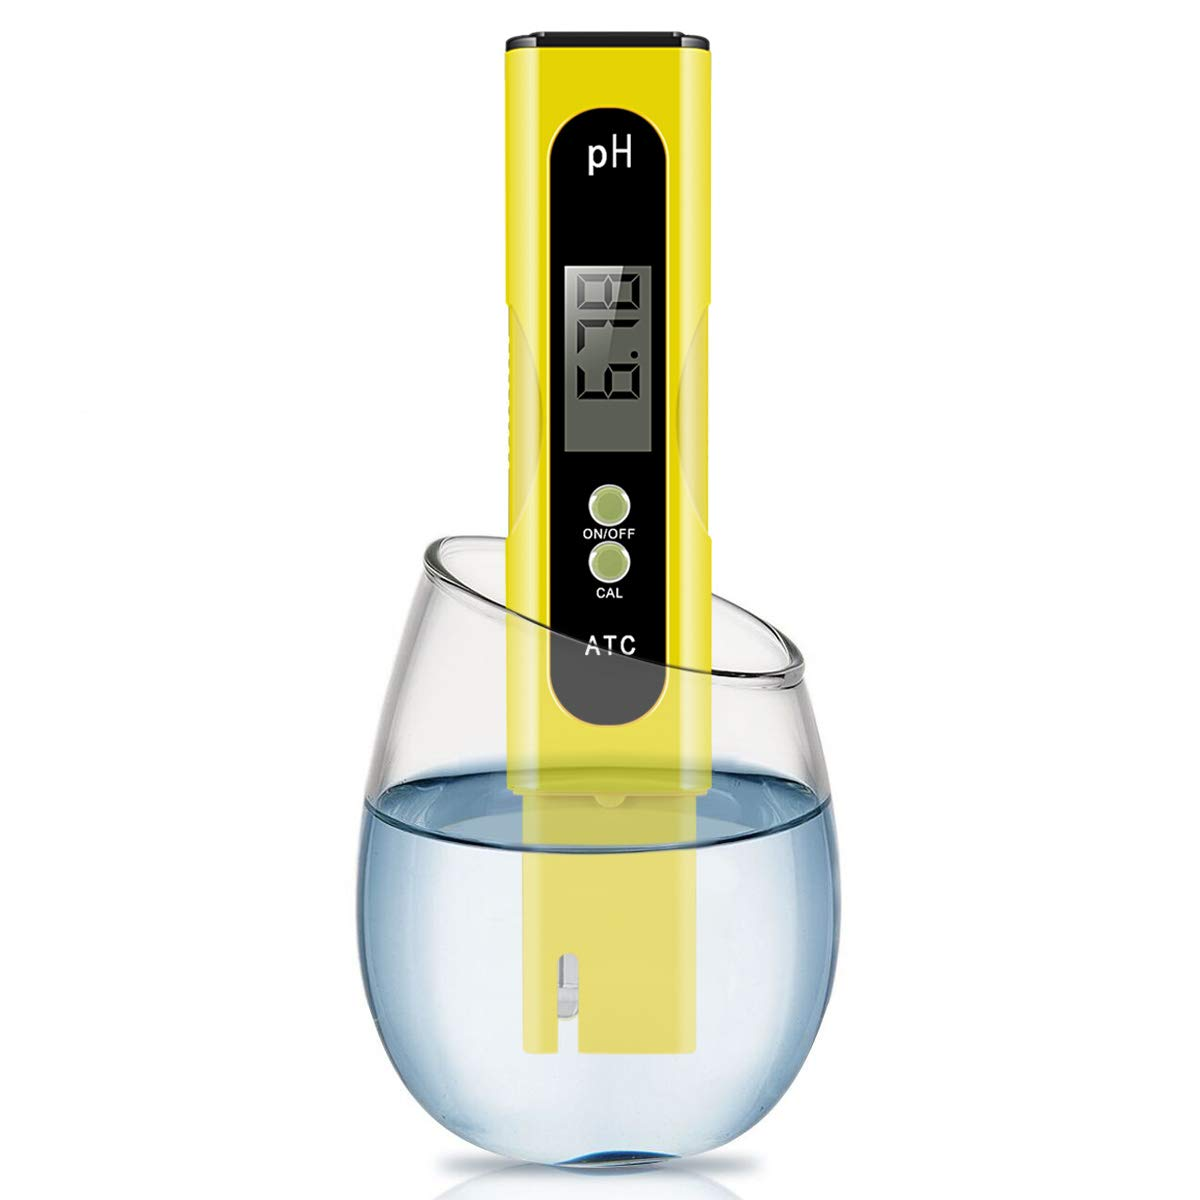 Digital PH Meter, VANTAKOOL PH Meter 0.01 PH High Accuracy Water Quality Tester with 0-14 PH Measurement Range for Household Drinking, Pool and Aquarium Water PH Tester Design with ATC (Blue) (yellow) JiNan Enze Electronic Co. Ltd